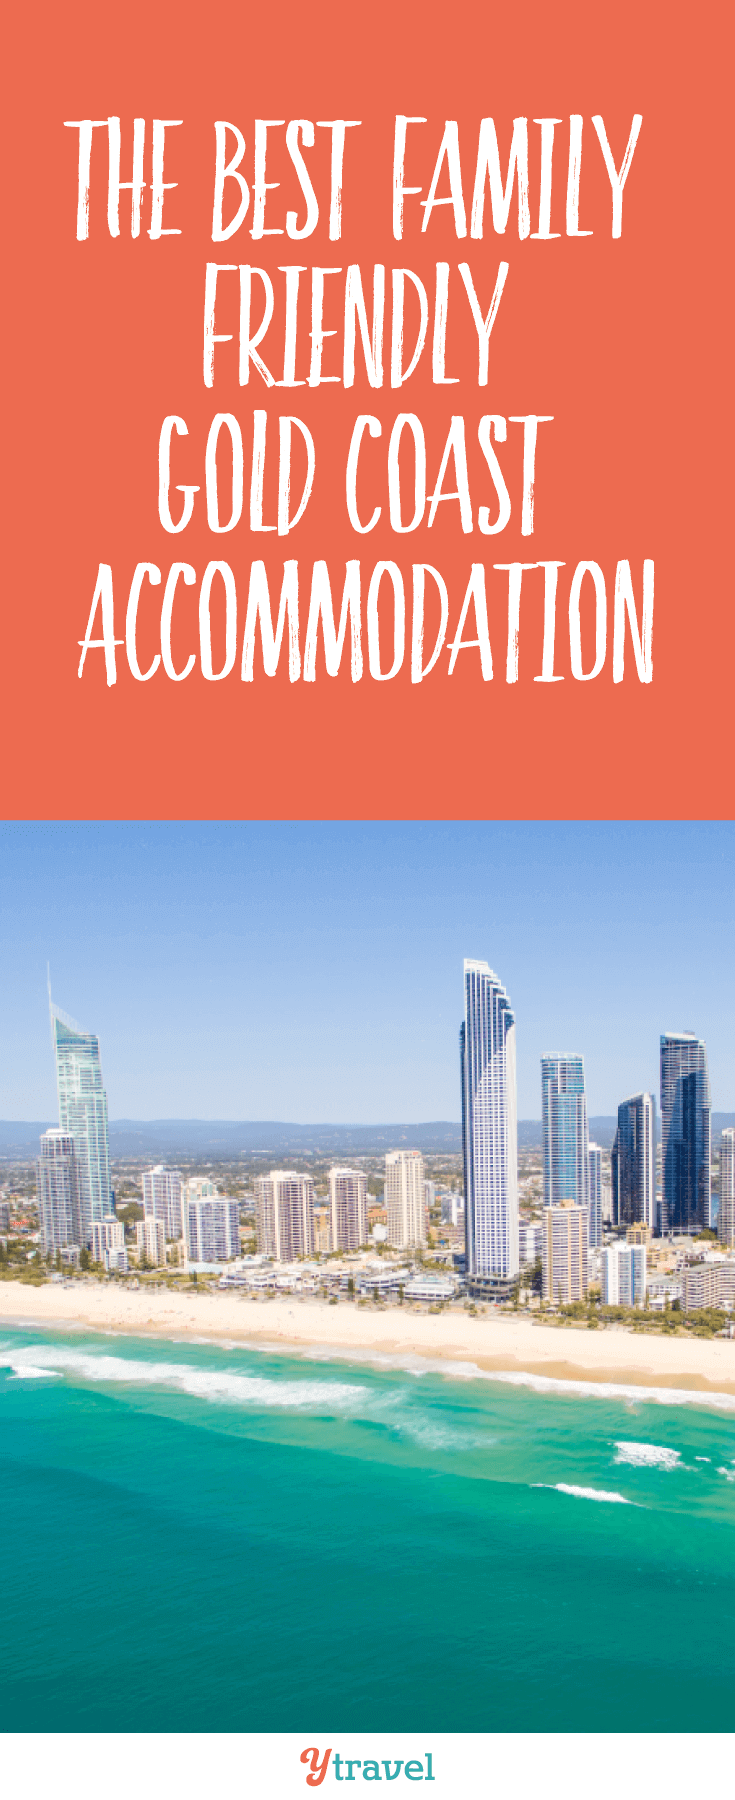 Looking for the best family friendly accommodation on the Gold Coast? Check out these 16 places to stay from budget to luxury and based on personal experience.